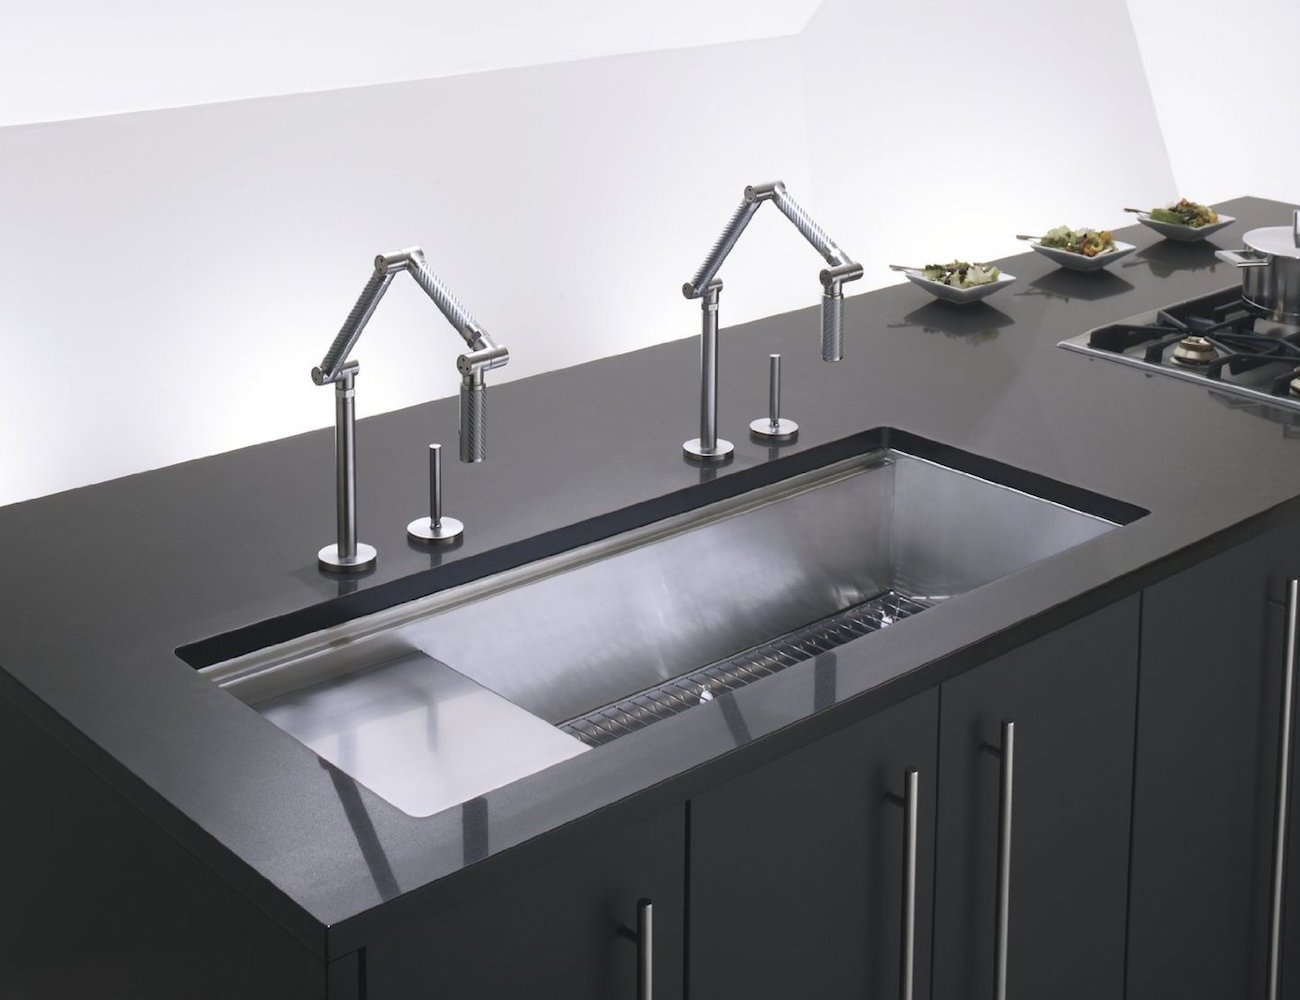 Ideas, karbon articulating kitchen faucet karbon articulating kitchen faucet horrible images latest picture of articulated kitchen faucet 1300 x 1000  .